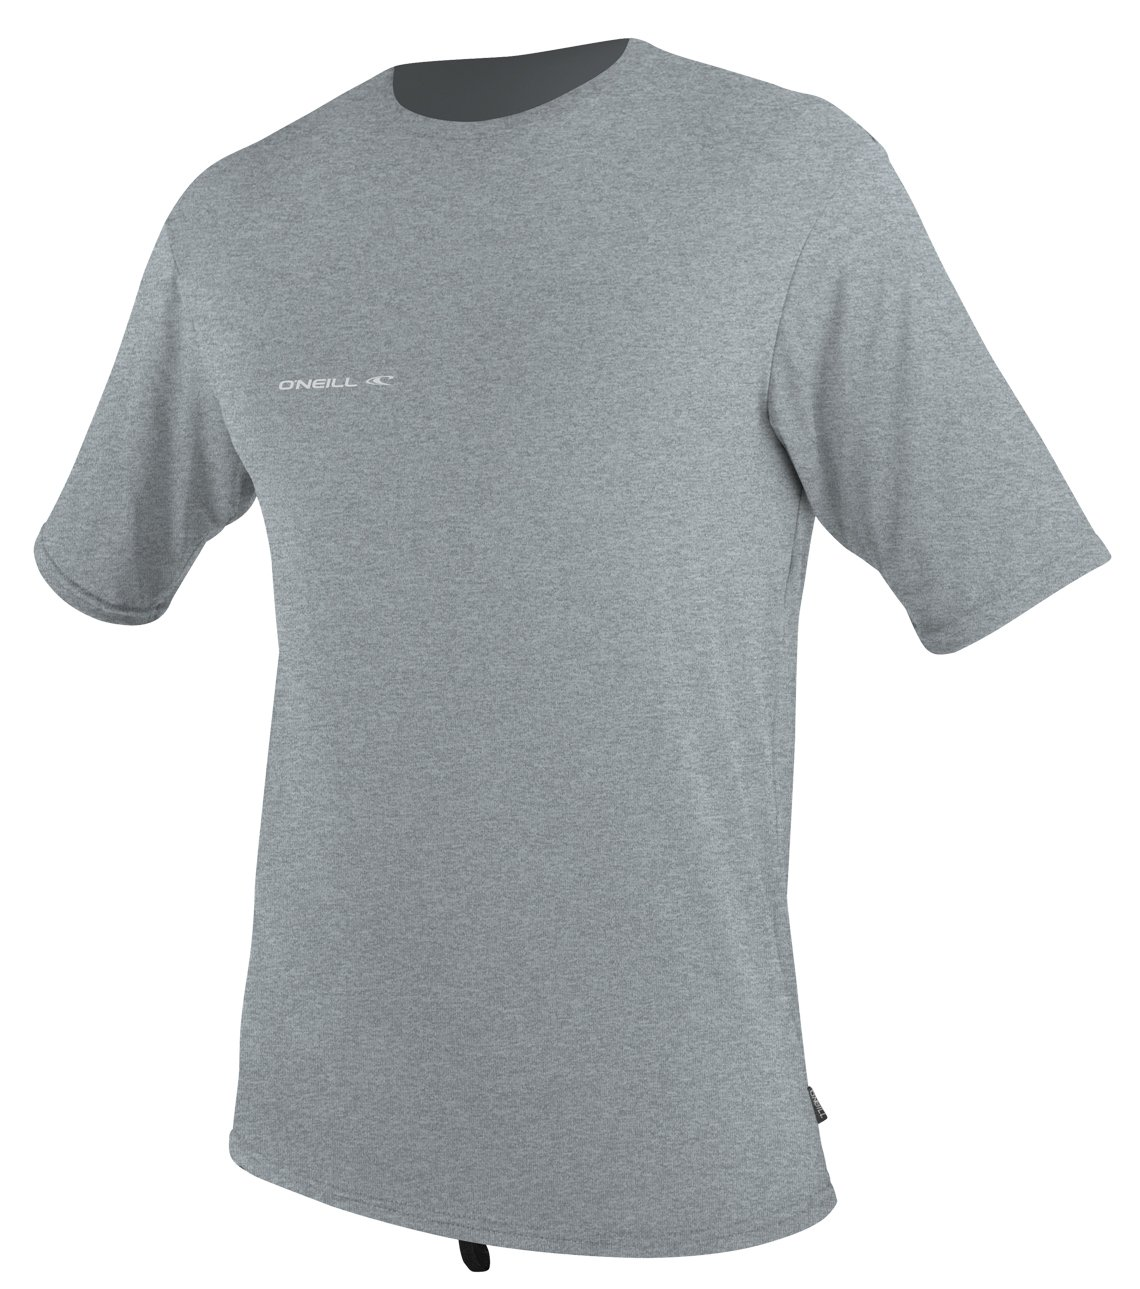 O'Neill Wetsuits Men's Hybrid UPF 50+ Short Sleeve Sun Shirt, CoolGrey by O'Neill Wetsuits (Image #1)